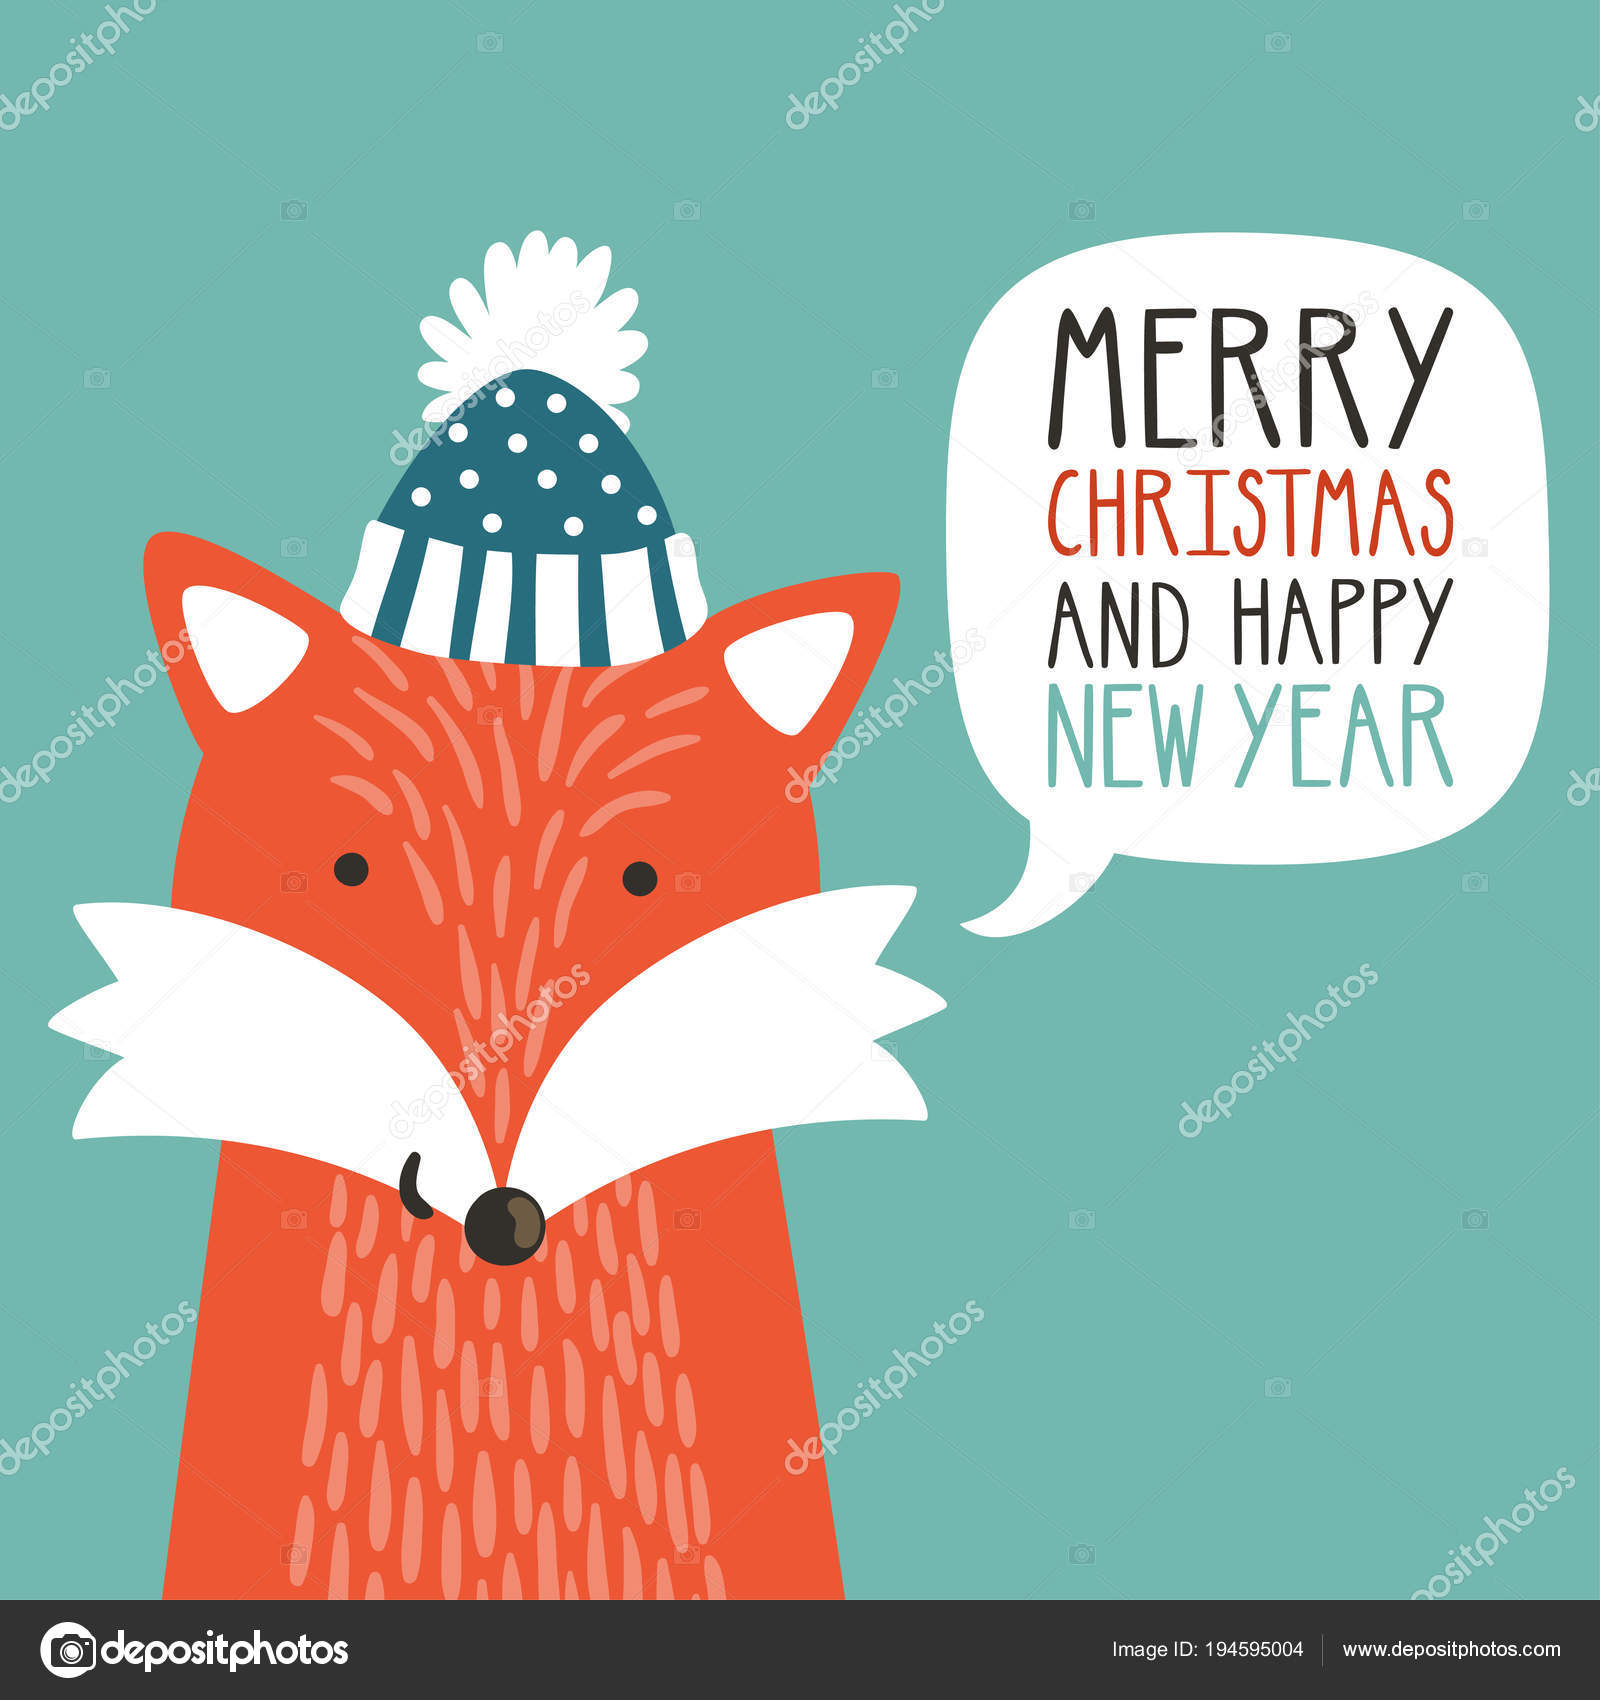 vector holiday illustration of a cute fox in a hat saying merry christmas and happy new year christmas background with smiling cartoon character